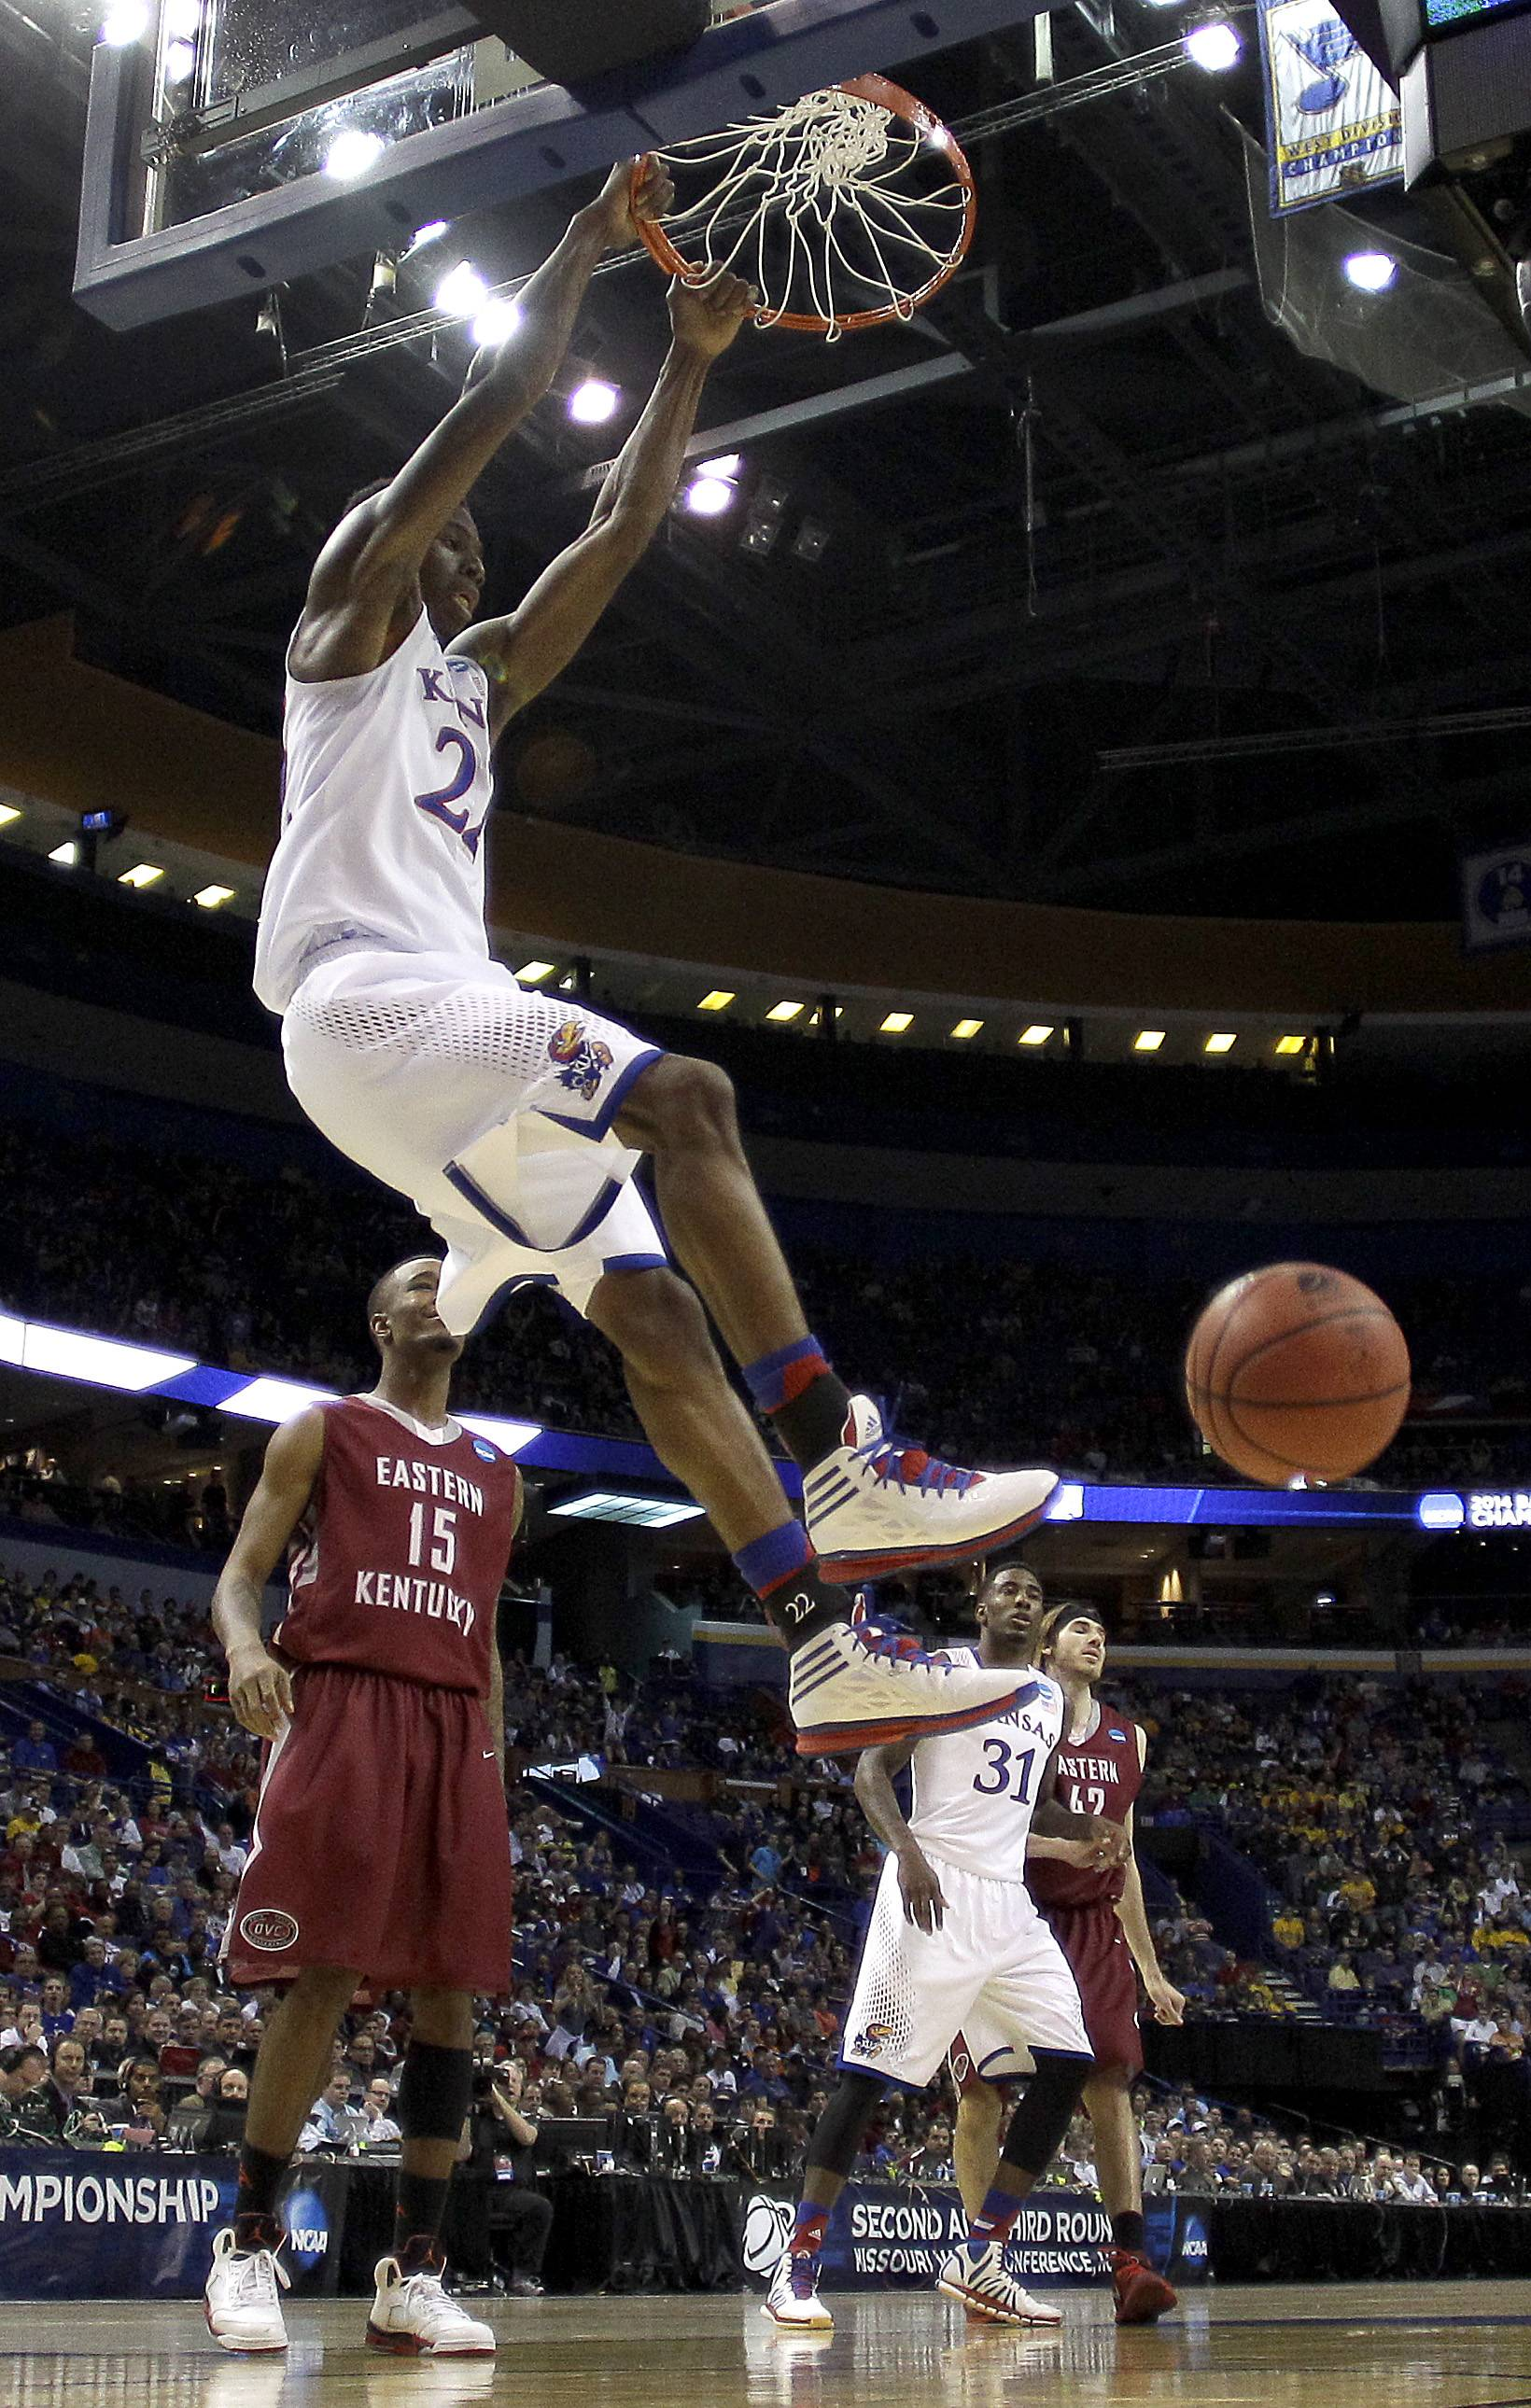 Kansas turns back pesky Eastern Kentucky, 80-69